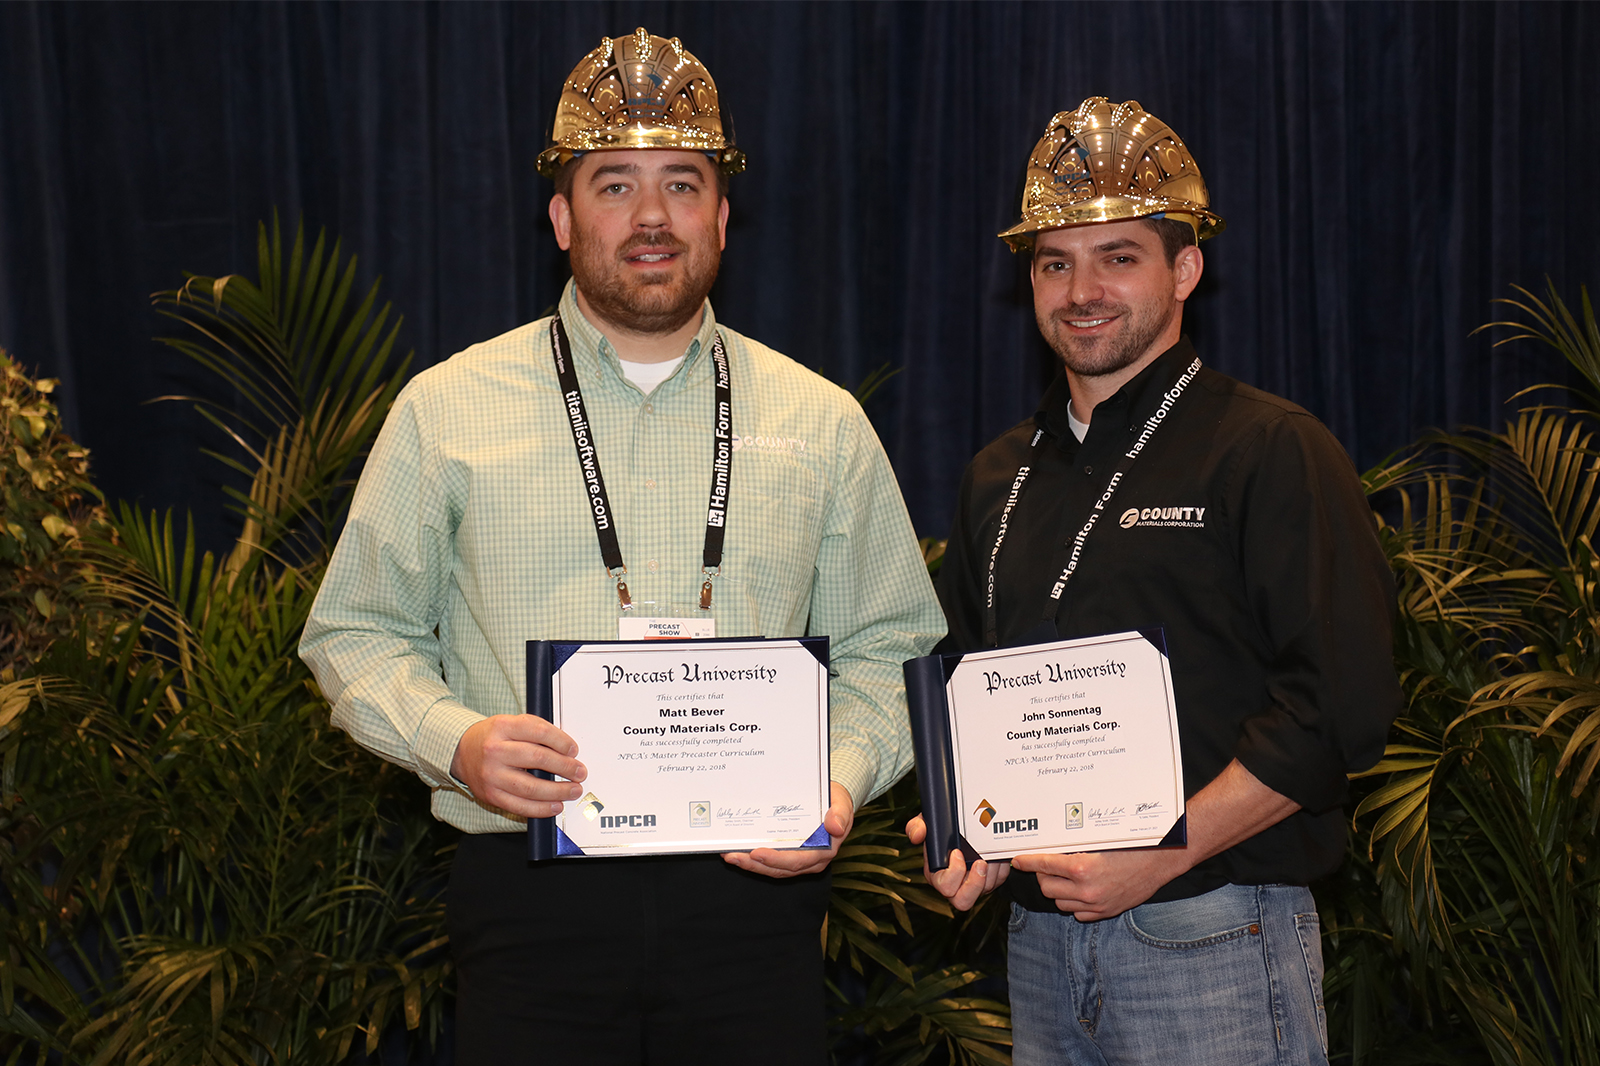 Master Precaster Certification Earned by Two County Materials Employees